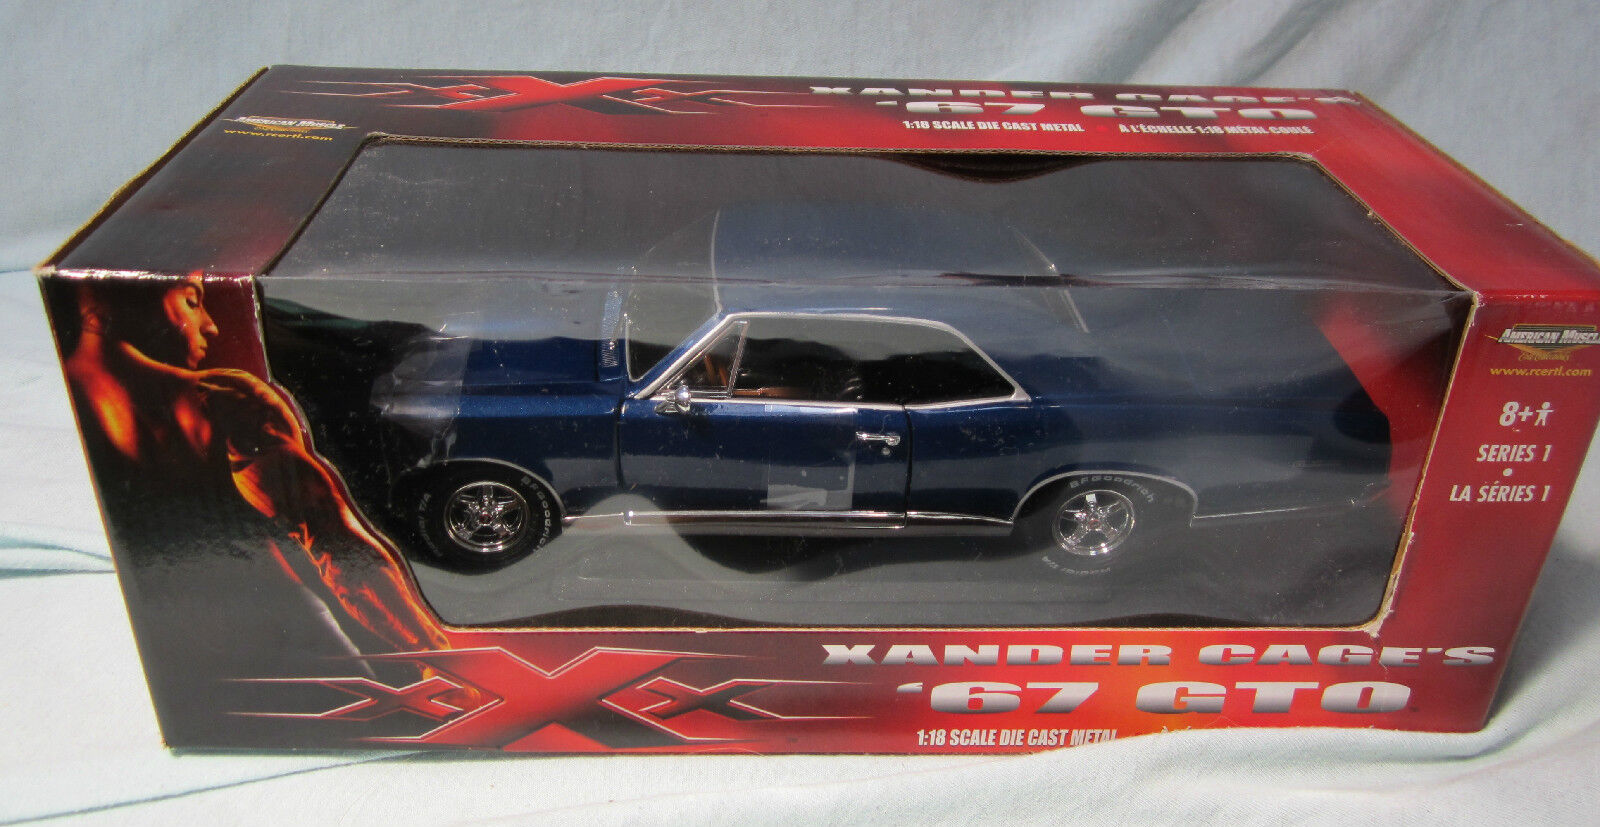 ERTL AMERICAN MUSCLE XANDER CAGE'S 1967 GTO Series Series Series 2 from XXX Movie -NEW IN BOX 2c1f6f